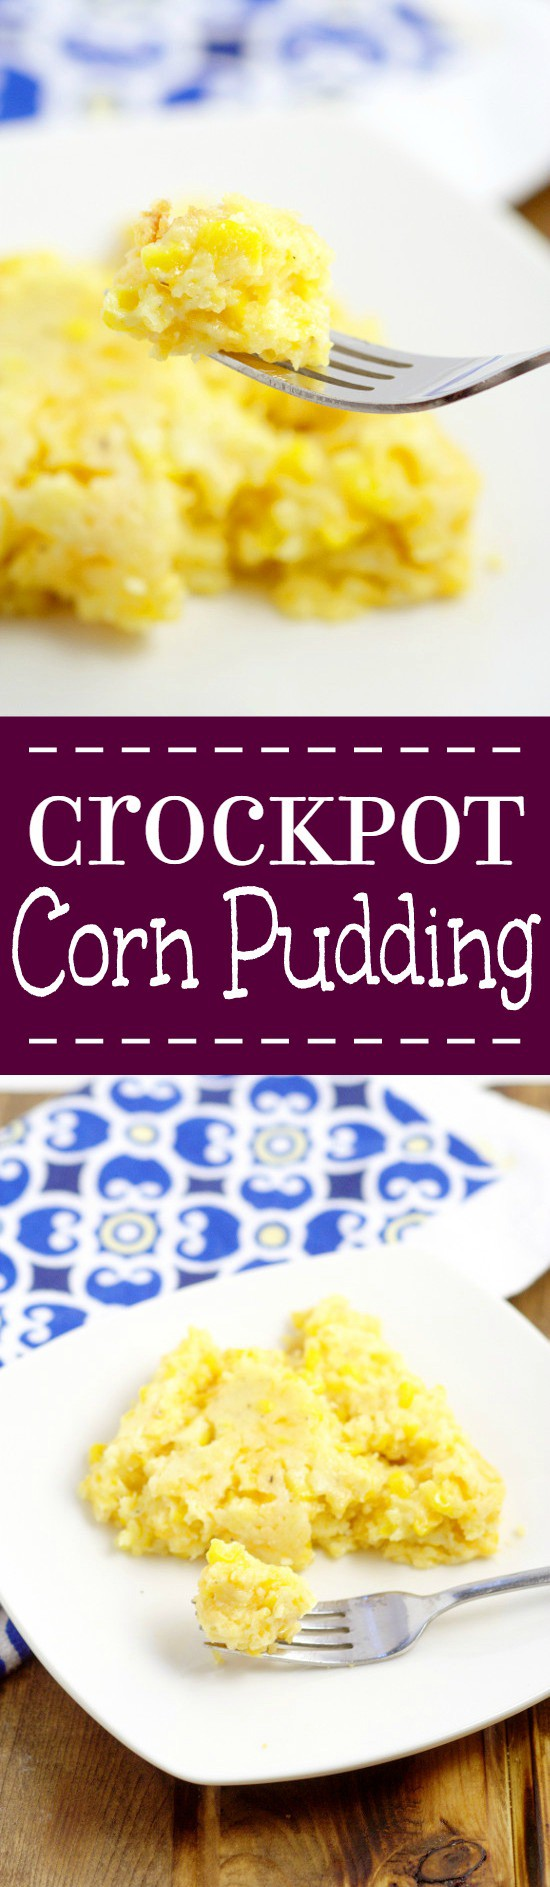 Crockpot Corn Puddingrecipe with sweet corn and cornbread mixed with salty, gooey cheese, all in the slow cooker, for a delicious and simple side dish. I love this at Thanksgiving every year! Plus it takes care of the veggies and the bread!